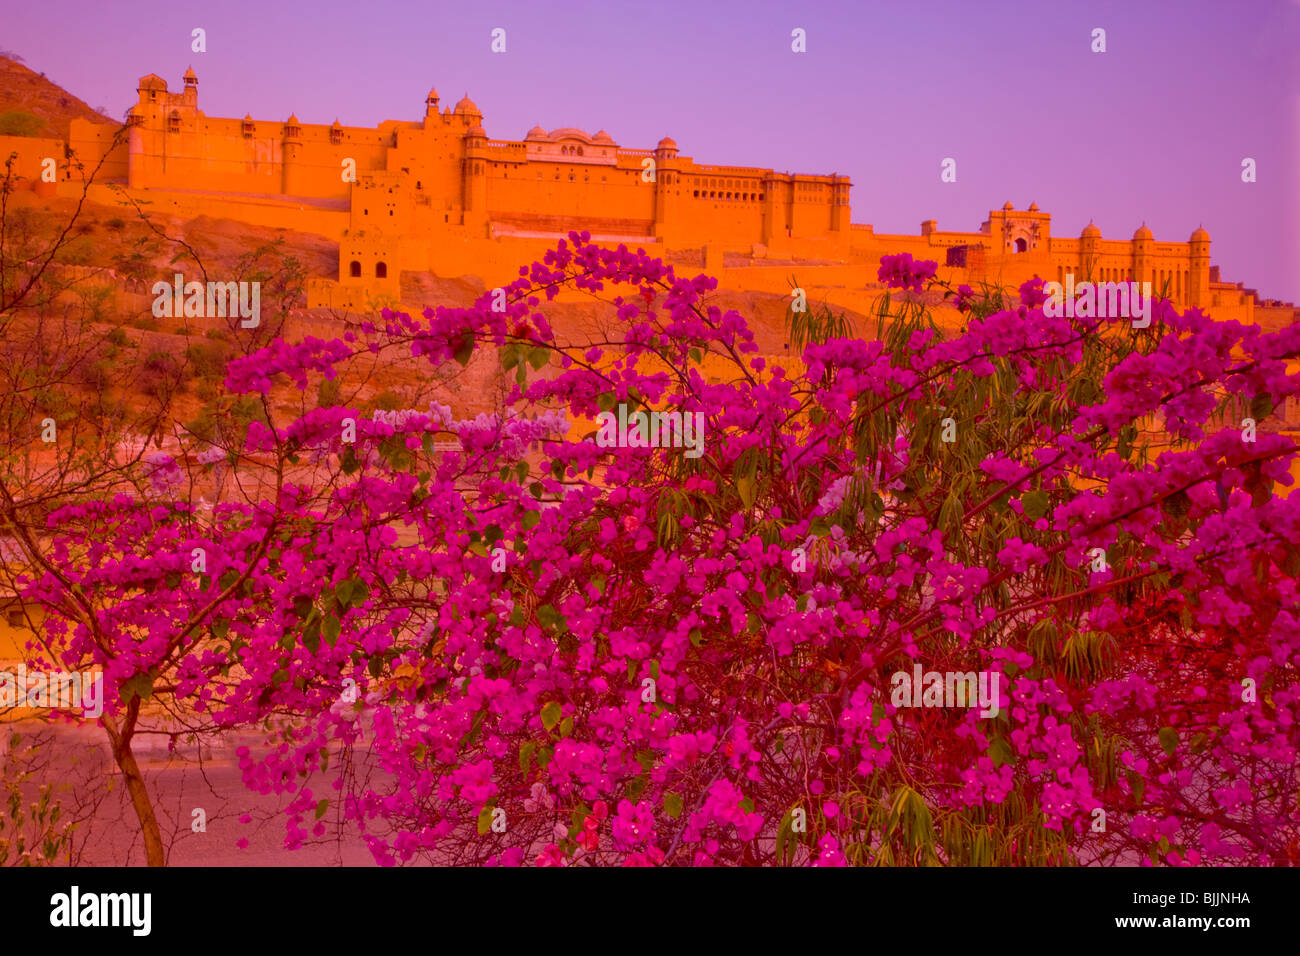 Amber Fort, Rajasthan, India, established in 1592, Near Jaipur - Stock Image